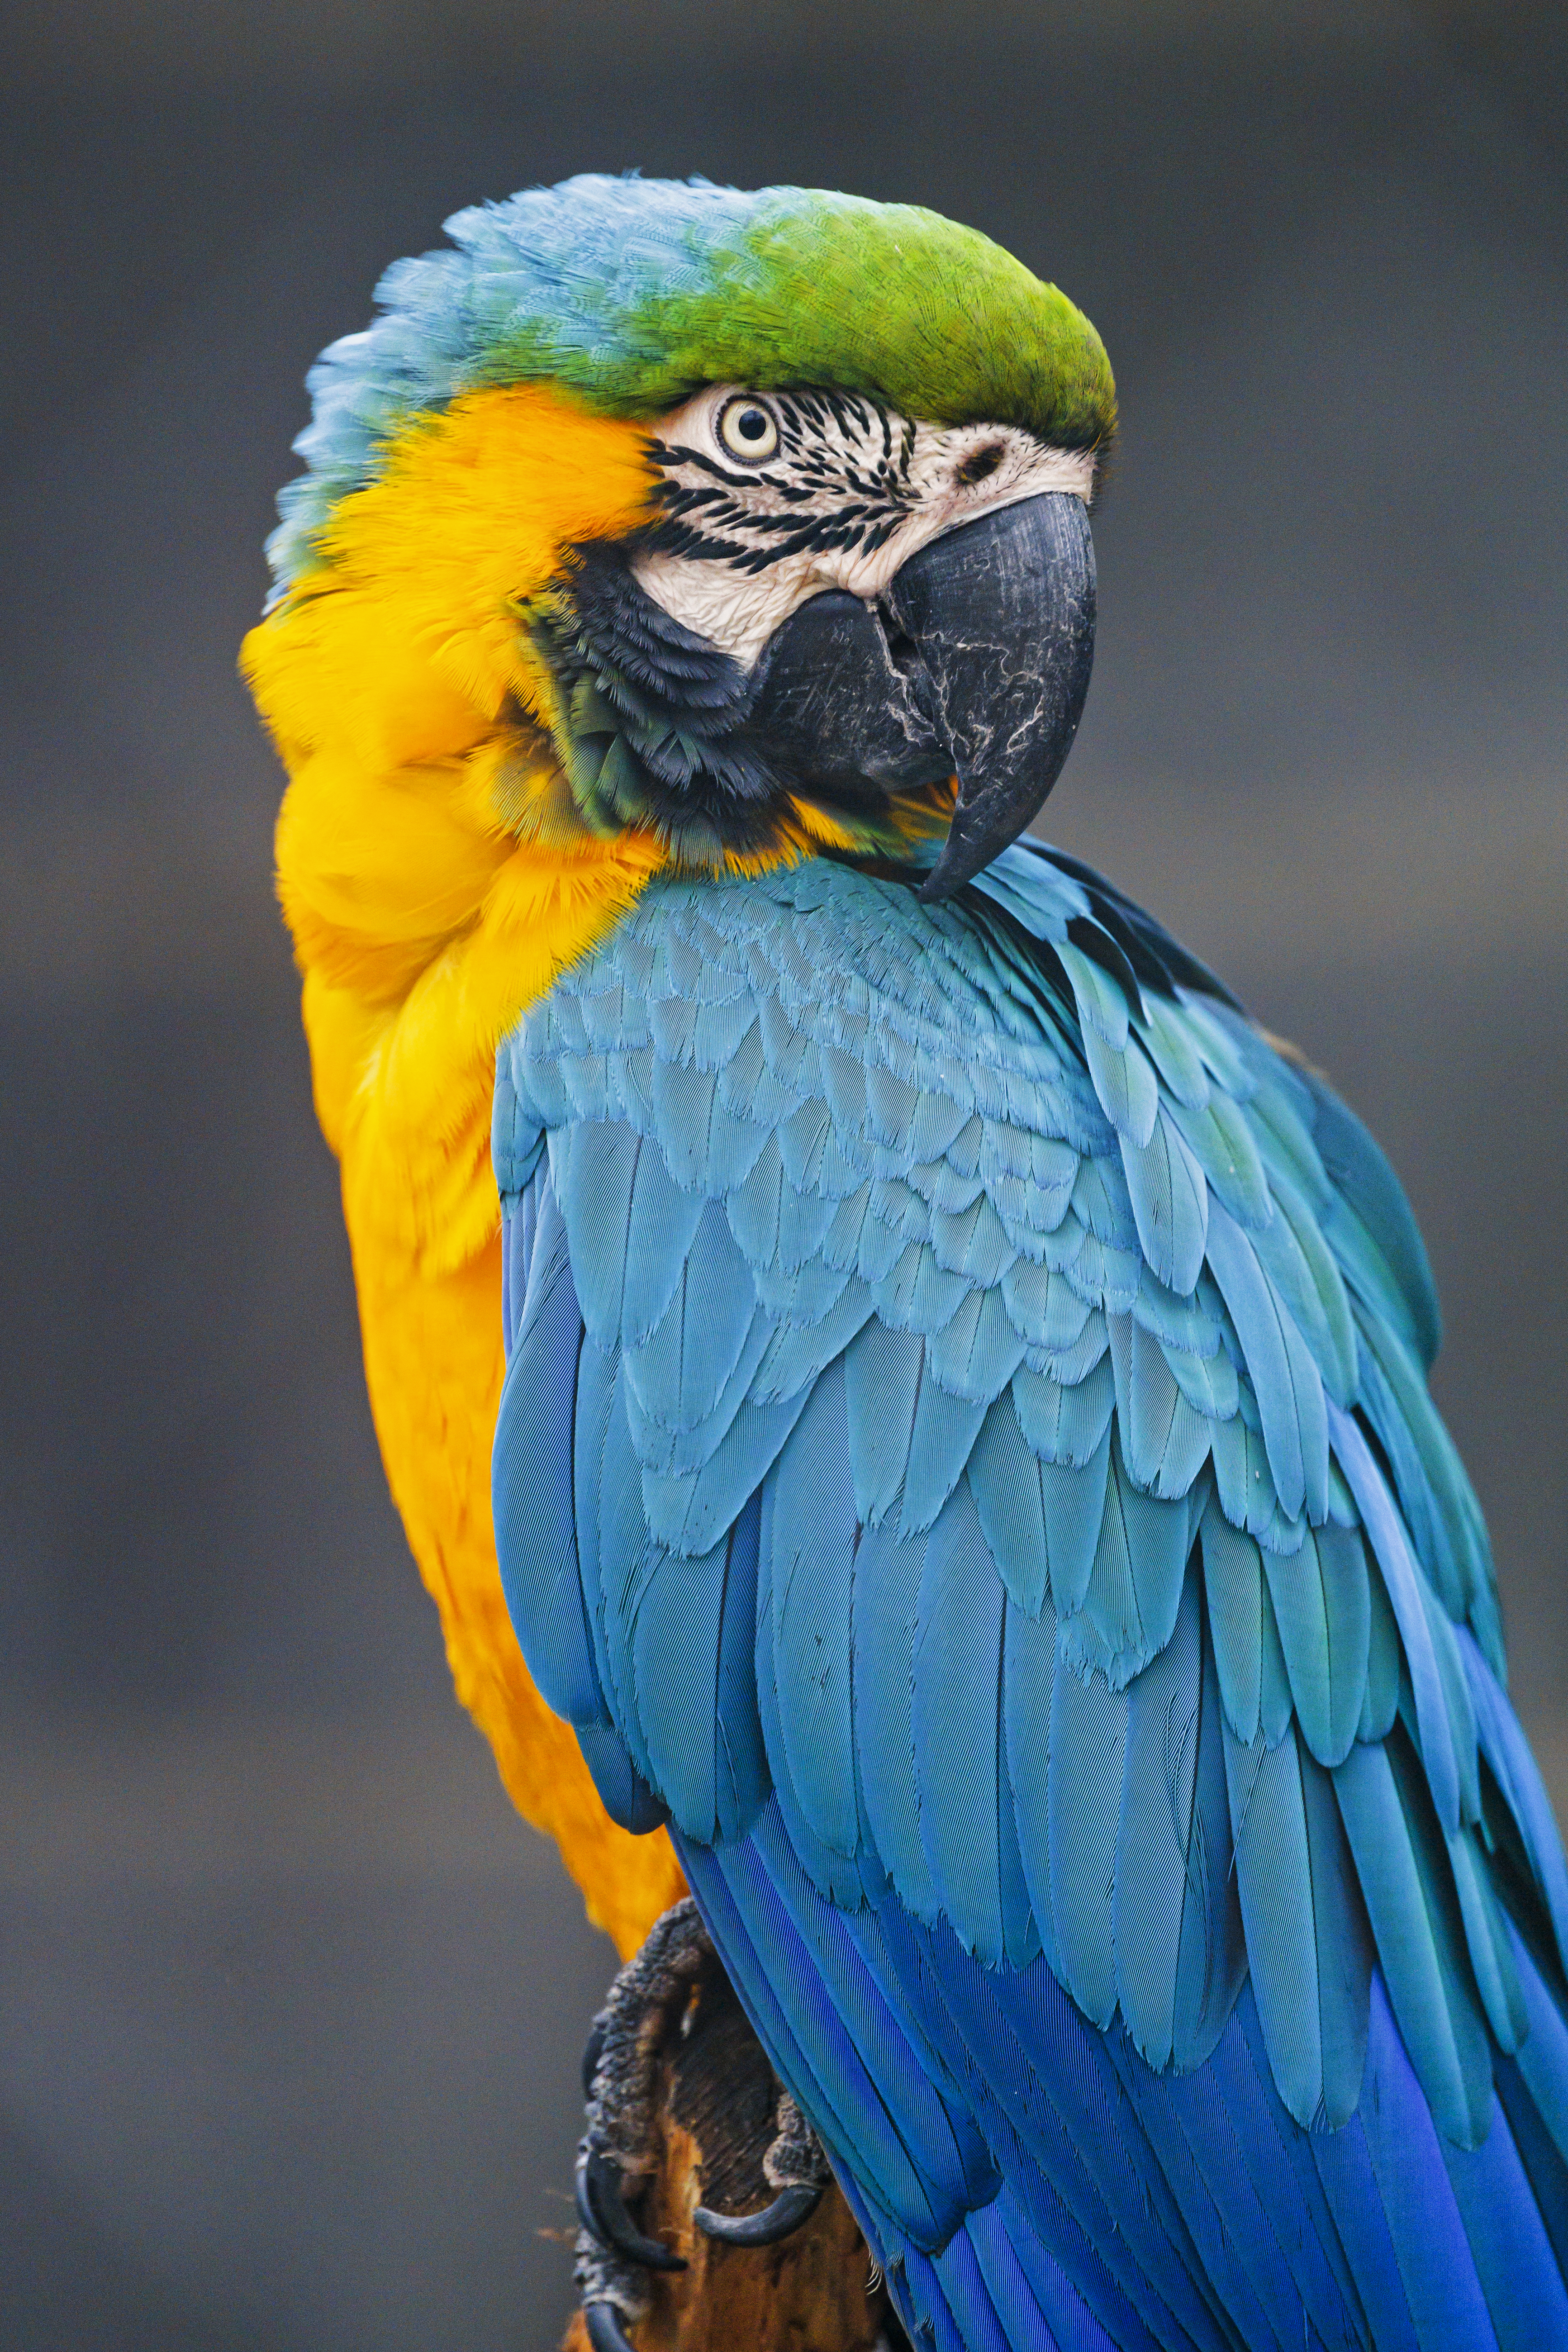 125793 download wallpaper Animals, Macaw, Parrots, Bird, Multicolored, Motley, Wild screensavers and pictures for free